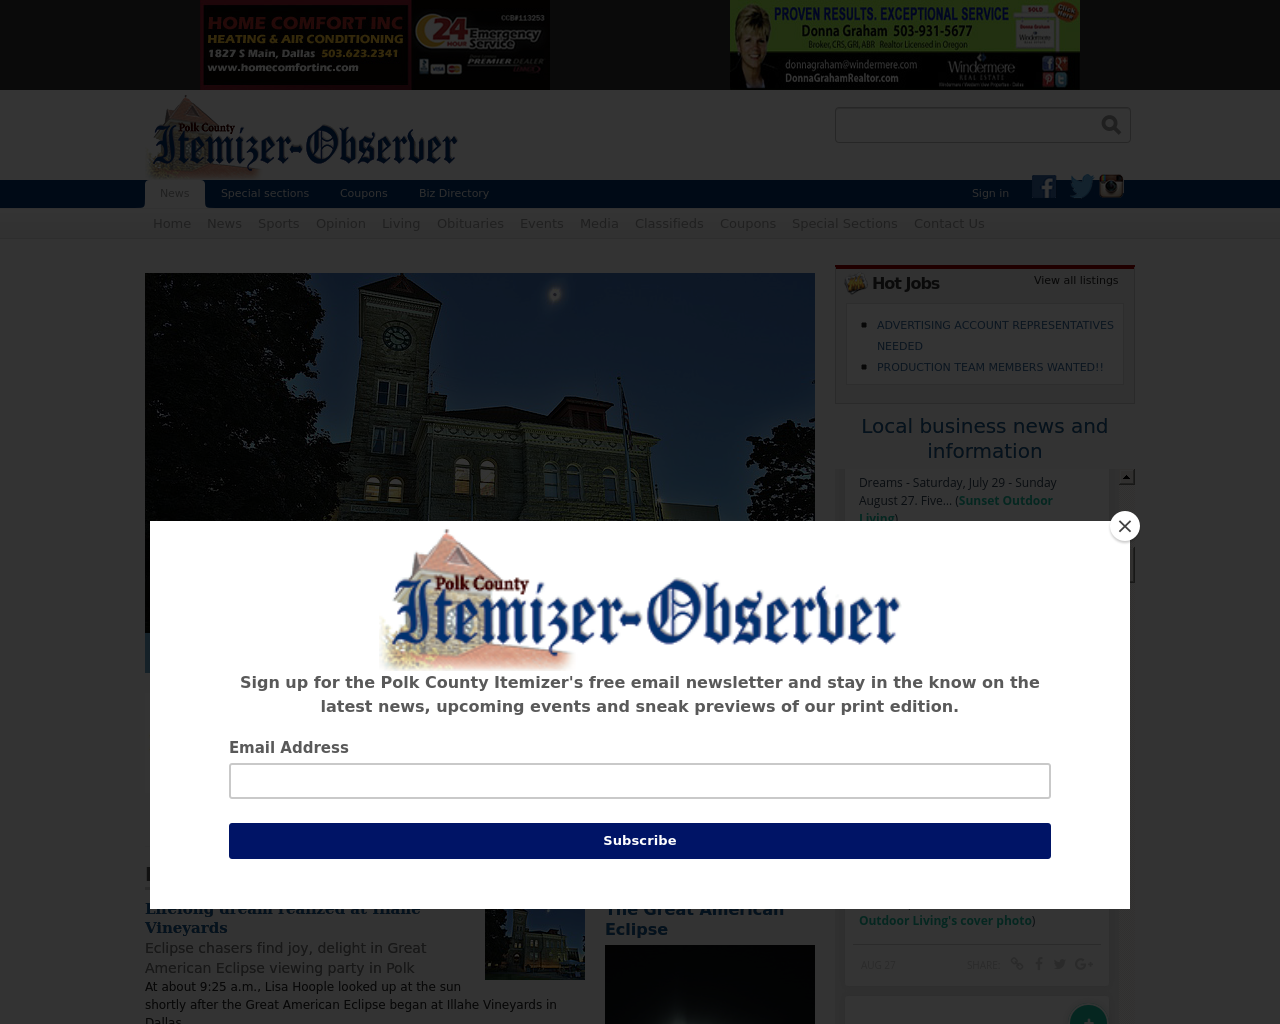 Polk-County-Itemizer-Observer-Advertising-Reviews-Pricing